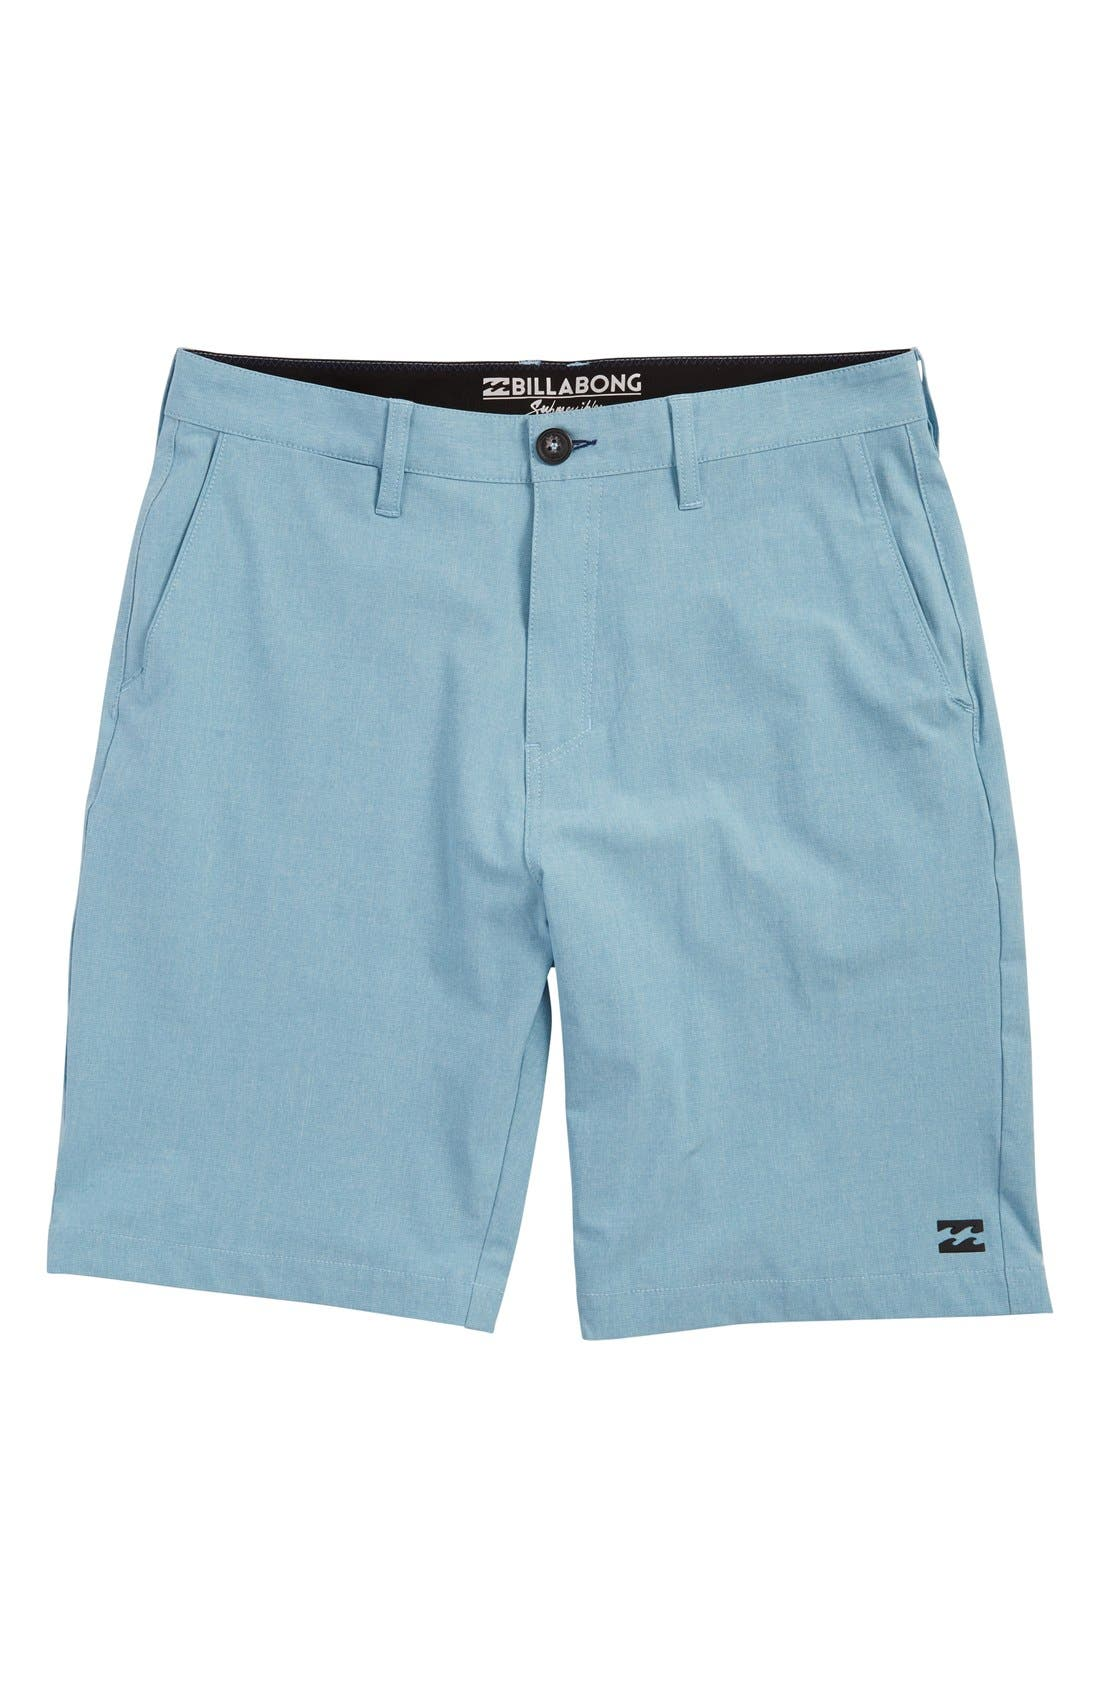 Crossfire X Submersible Hybrid Shorts,                             Main thumbnail 10, color,